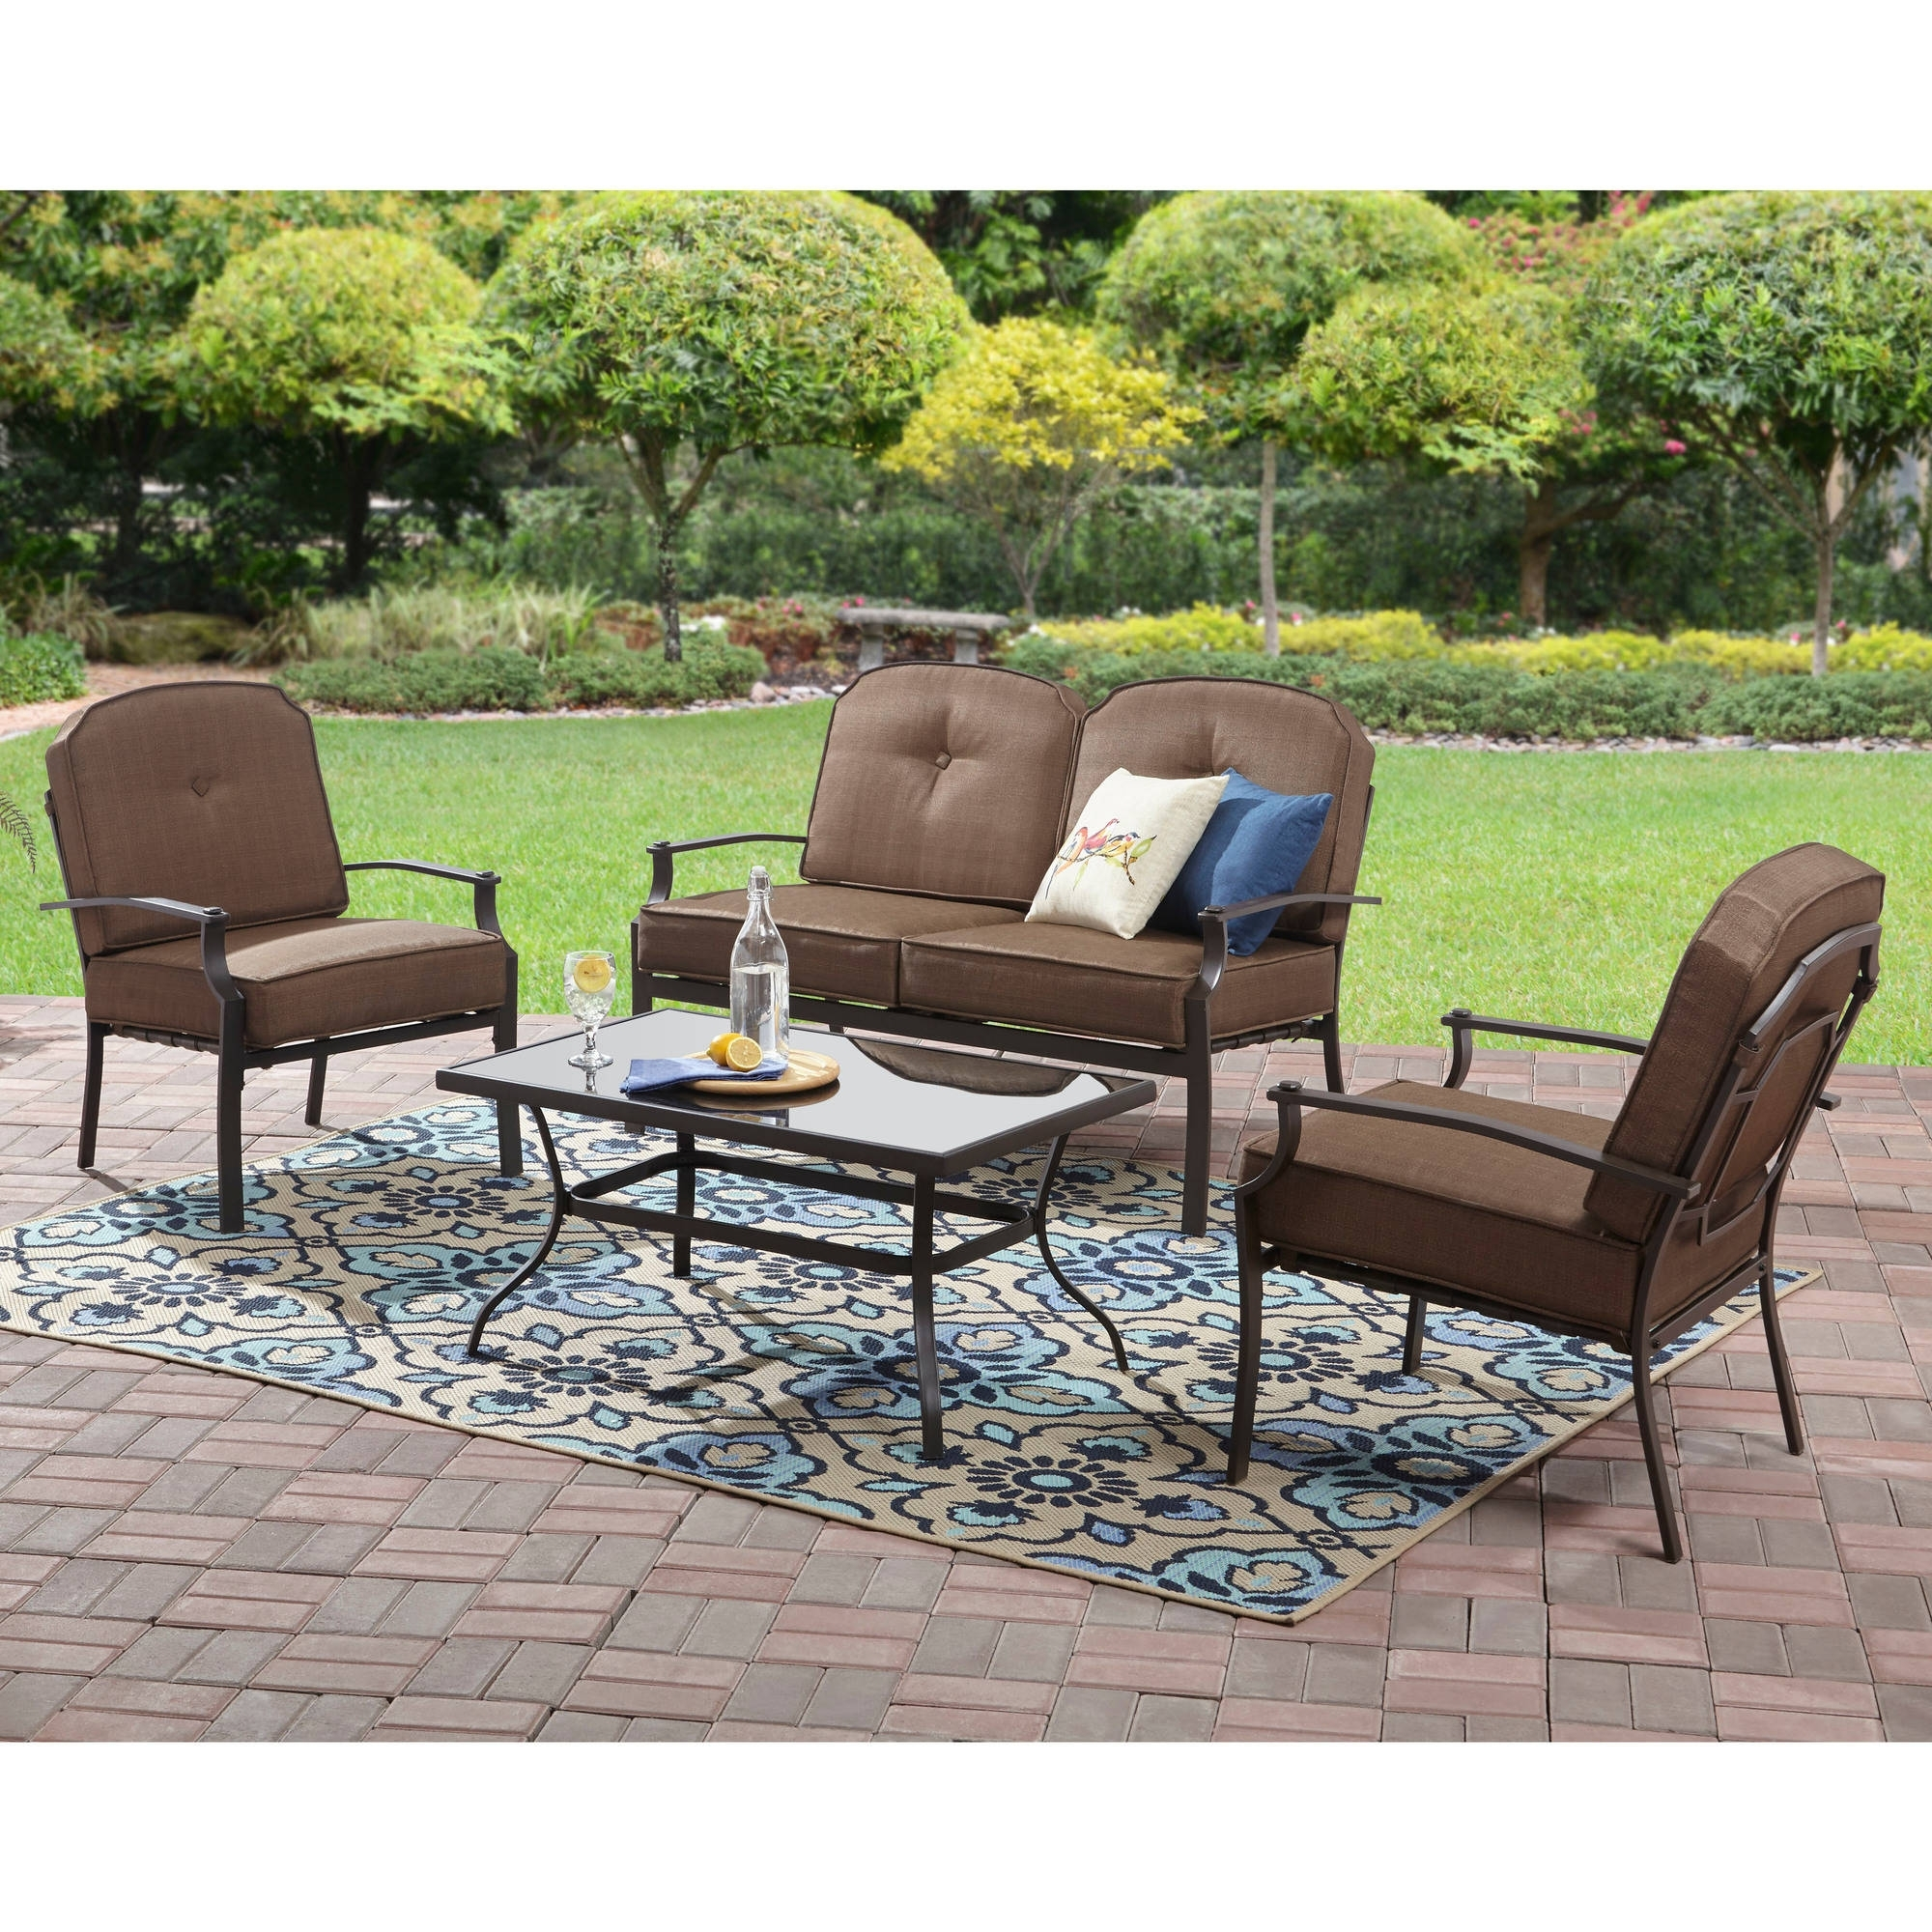 Patio Furniture Conversation Sets At Home Depot Inside Fashionable Average Cost Of Concrete Patio Tags : 4 Piece Conversation Set Patio (View 15 of 20)